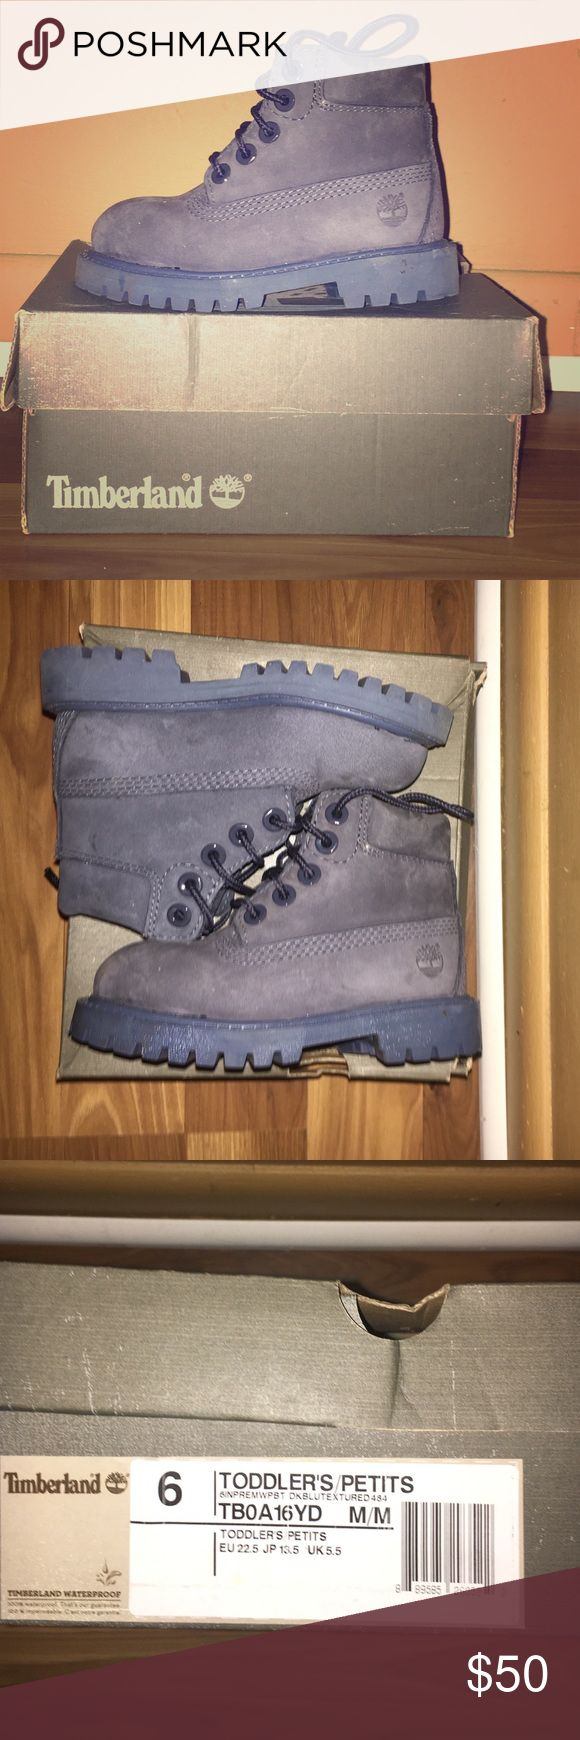 Timberland Boots Gray color timberland waterproof boots. Perfect for your little one during these winter months. Size is 6 toddlers Timberland Shoes Boots